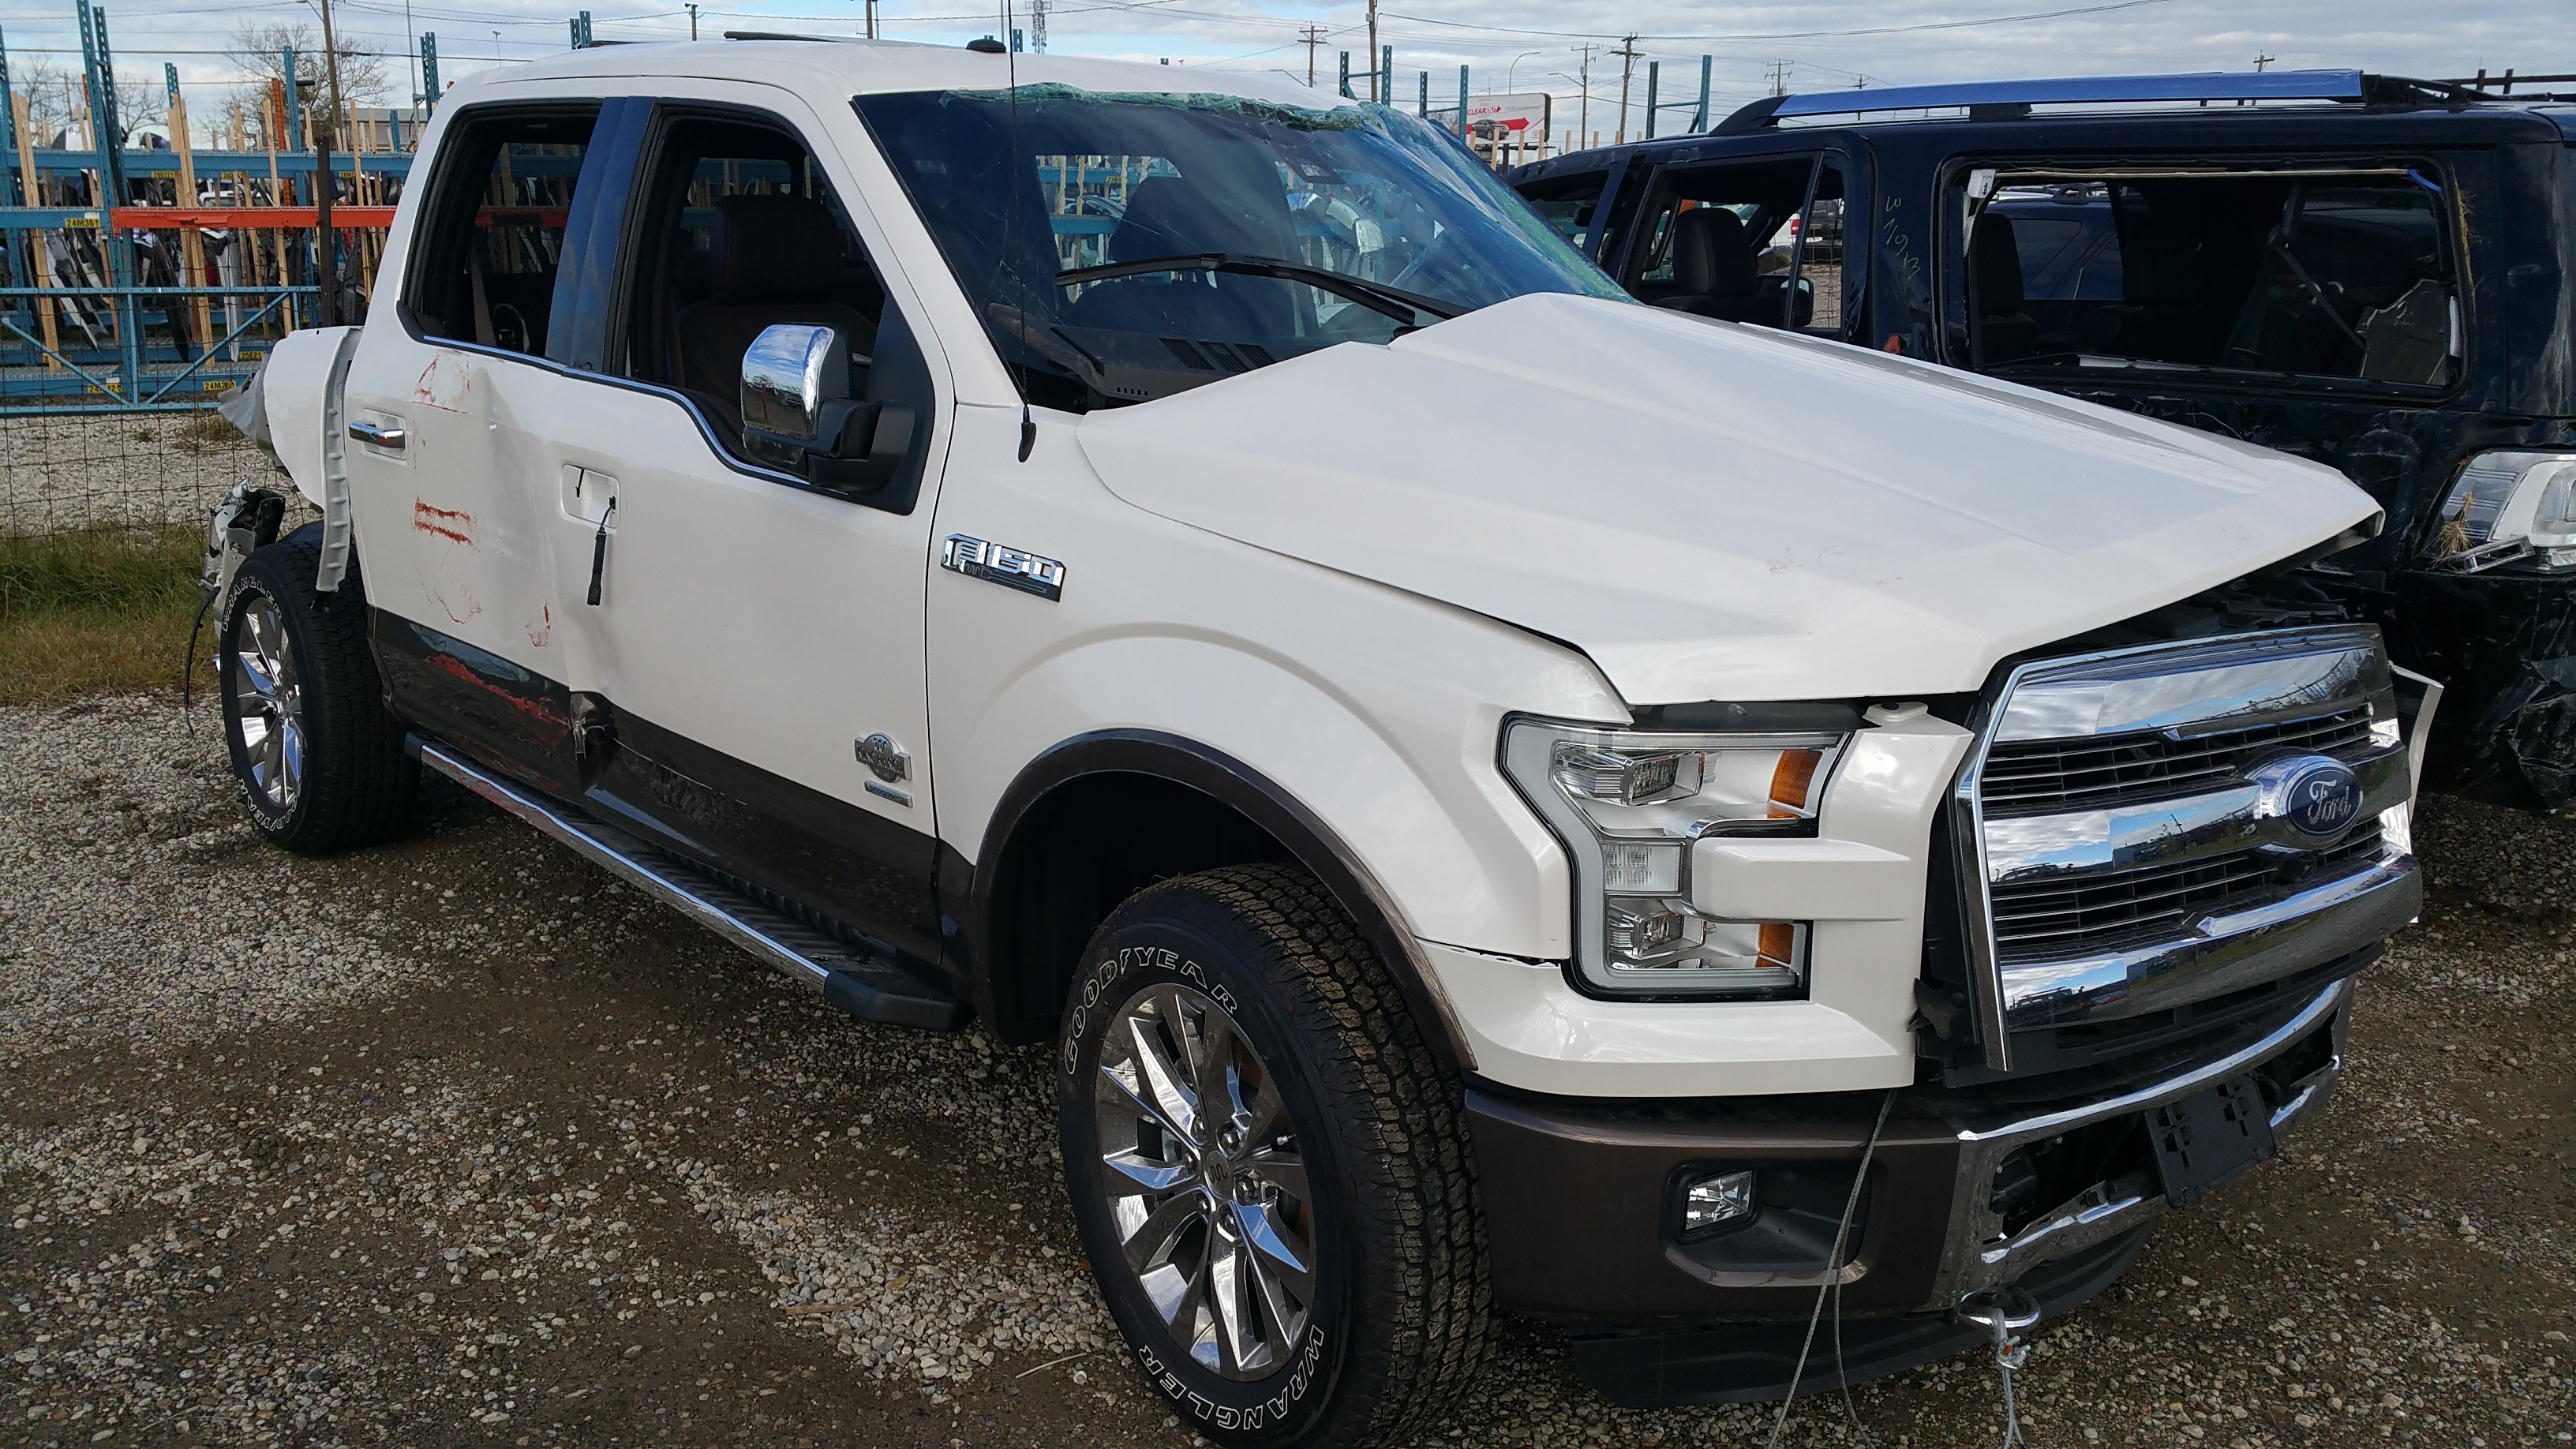 mj and home sale wire trucks business in since best year to hauling news date sales en new big f have for s ford